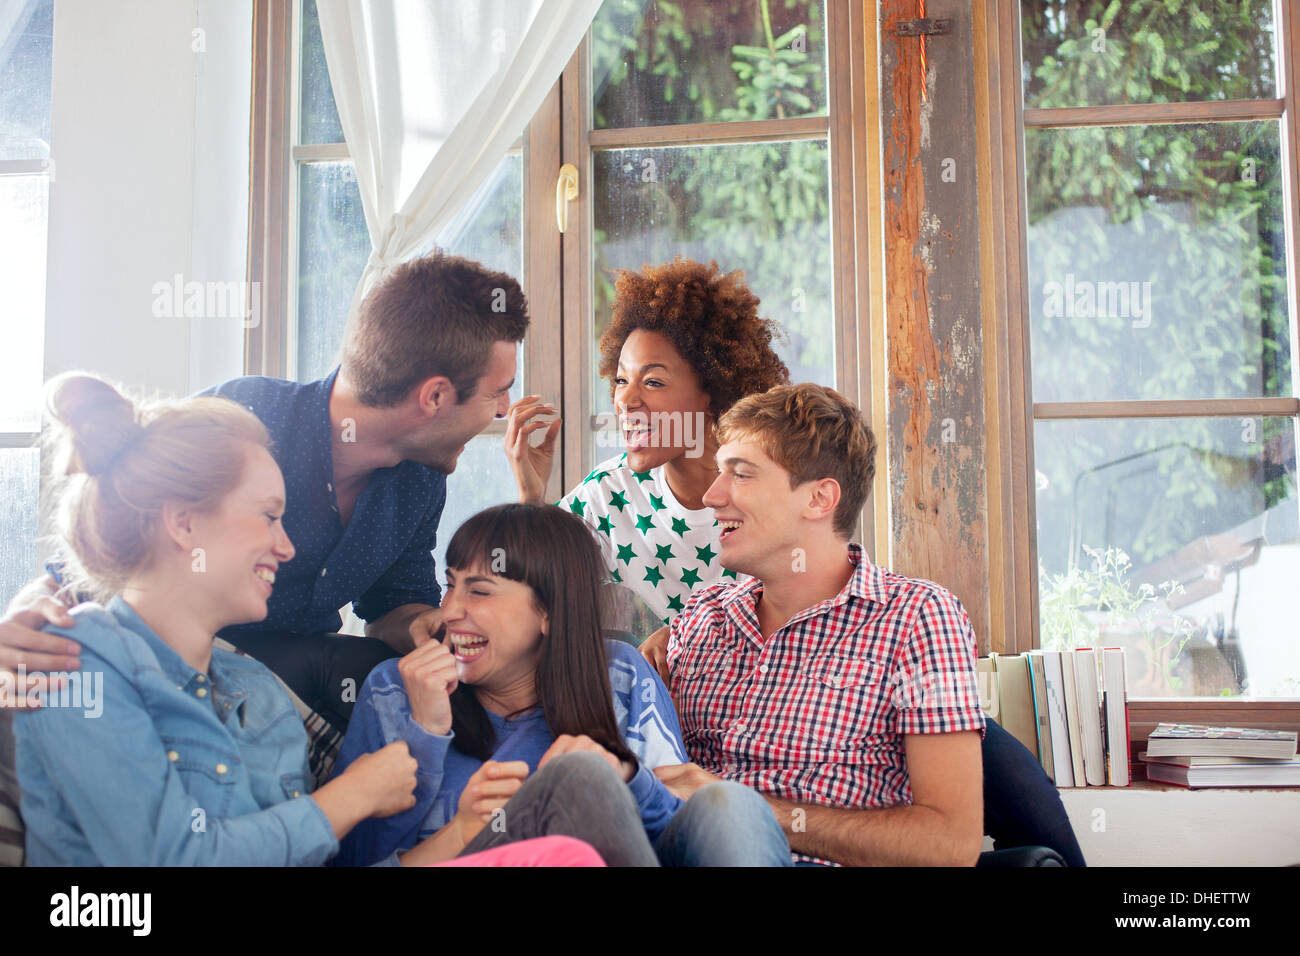 Group of friends laughing - Stock Image